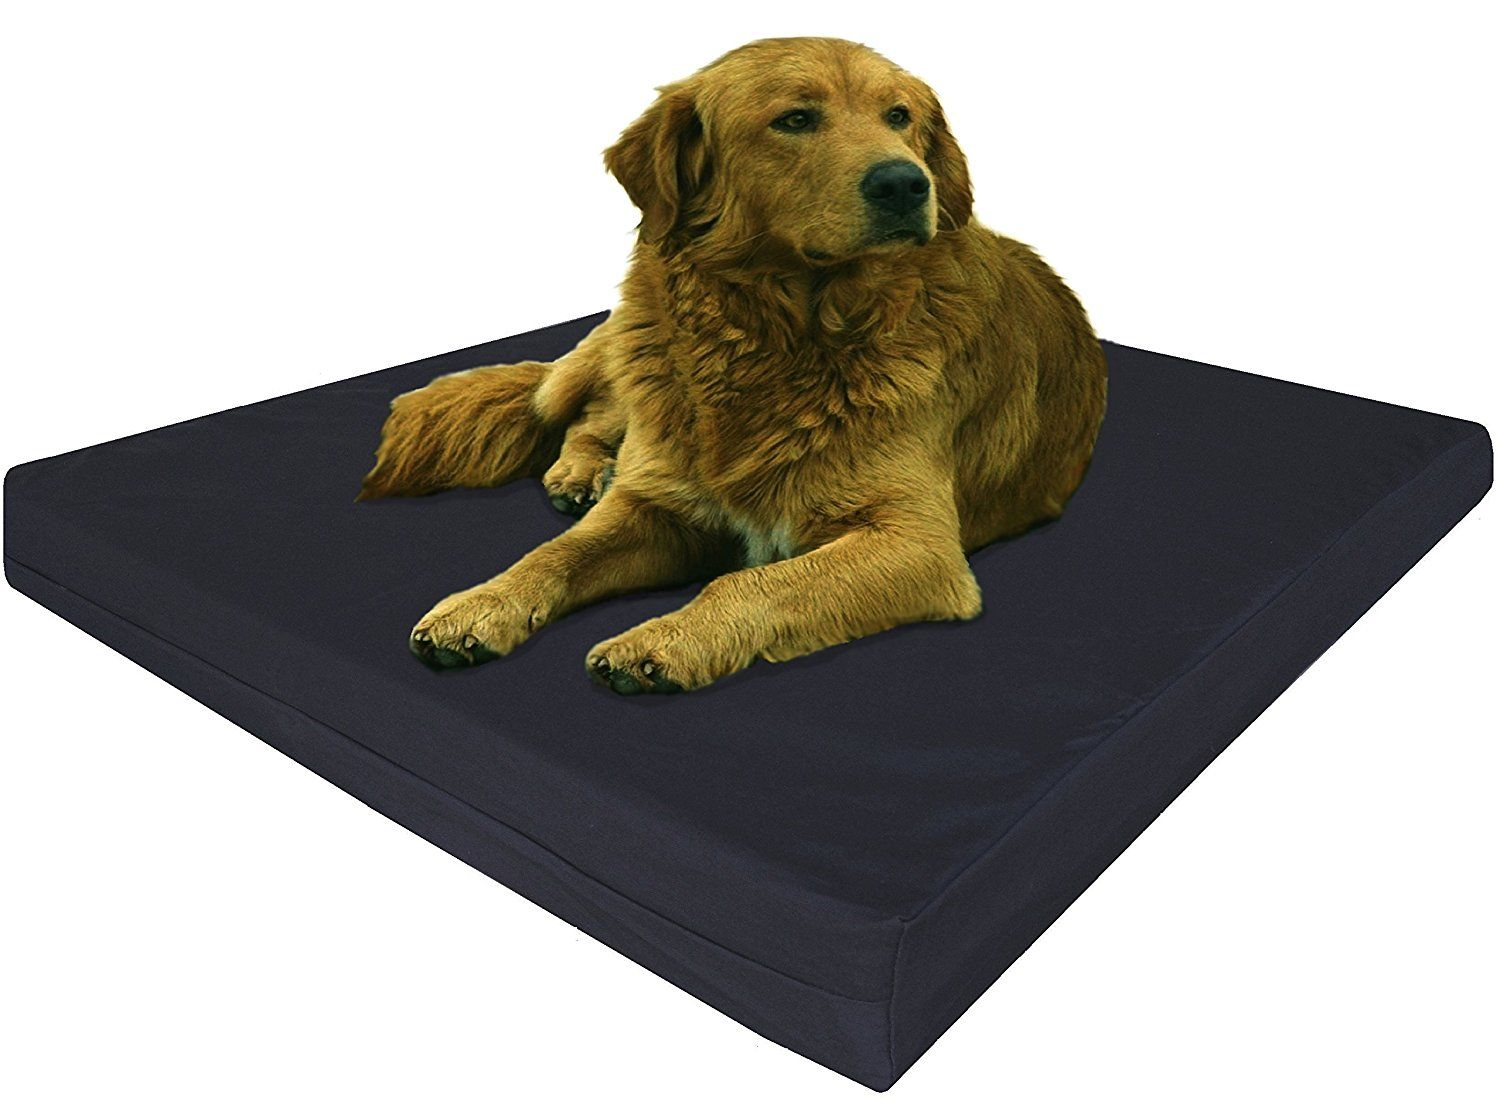 Dogbed4less Orthopedic Gel Infused Memory Foam Dog Bed for